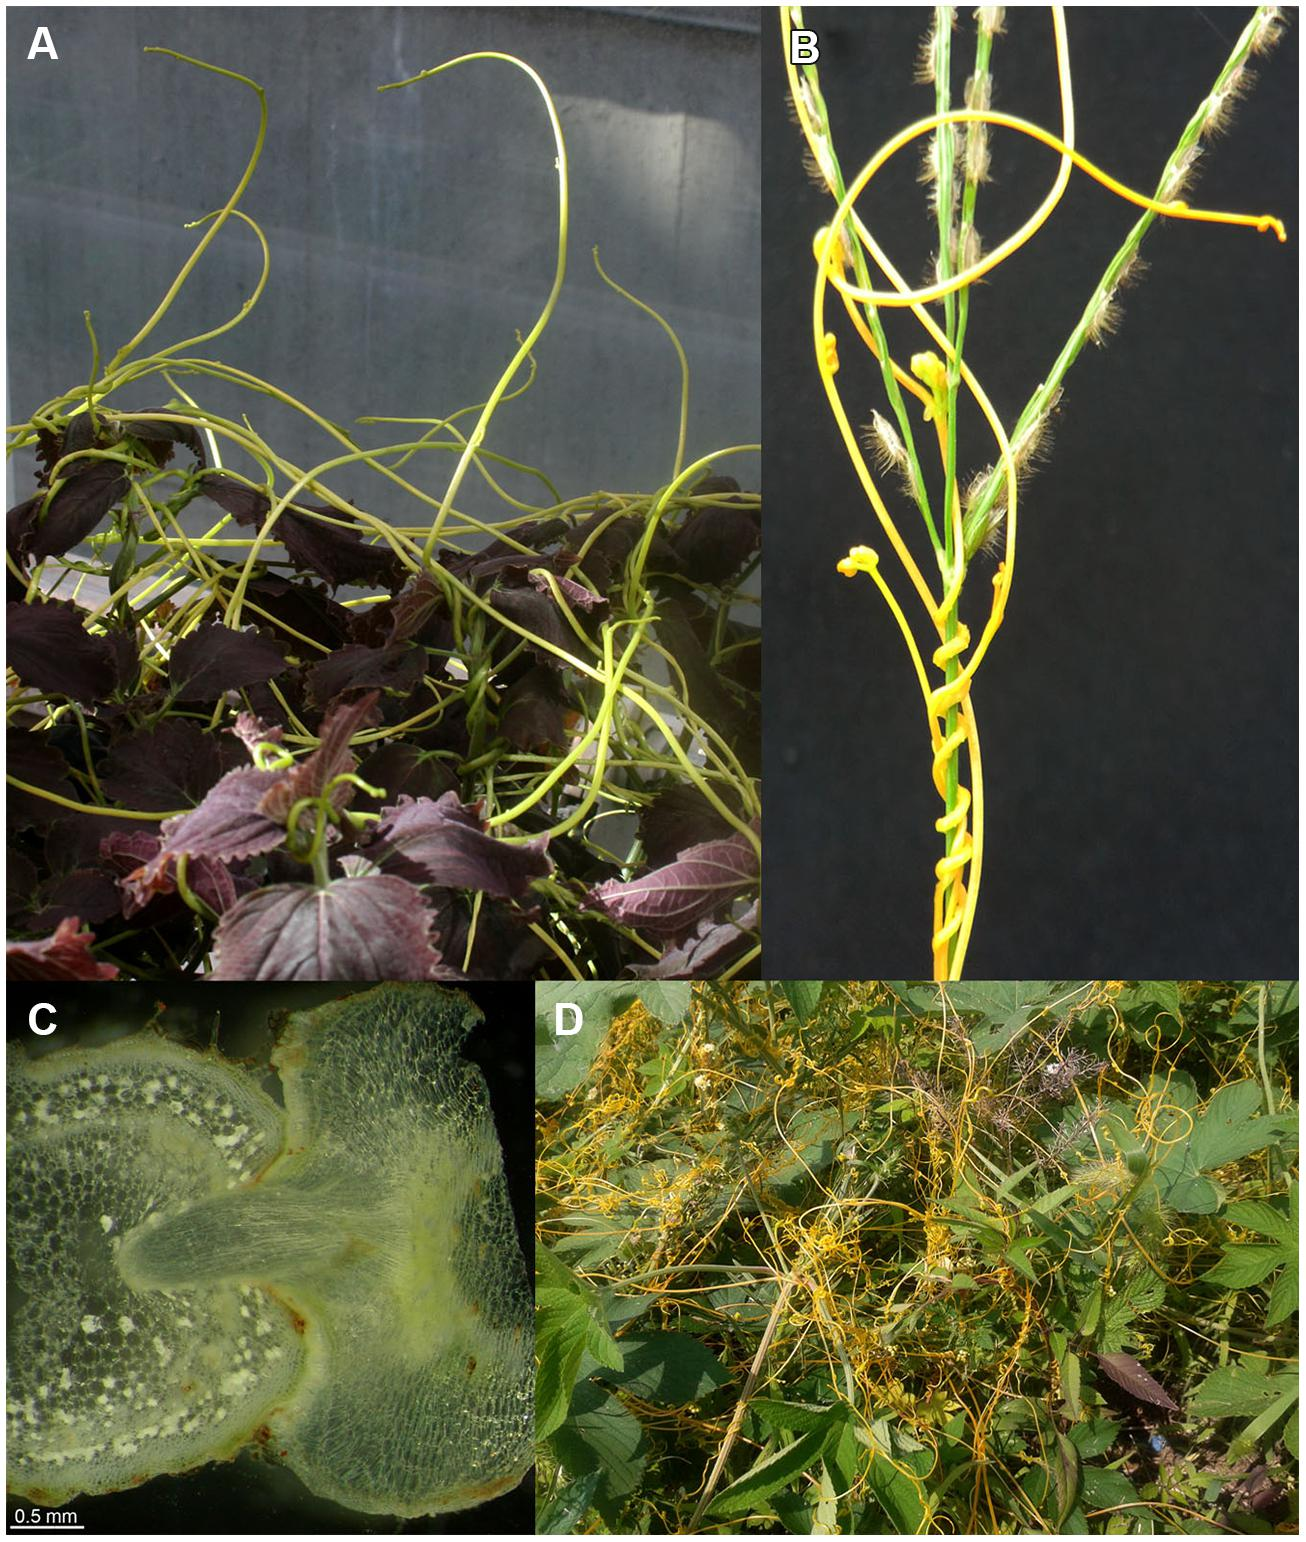 Dodder parasite plant: types, description, control measures 25